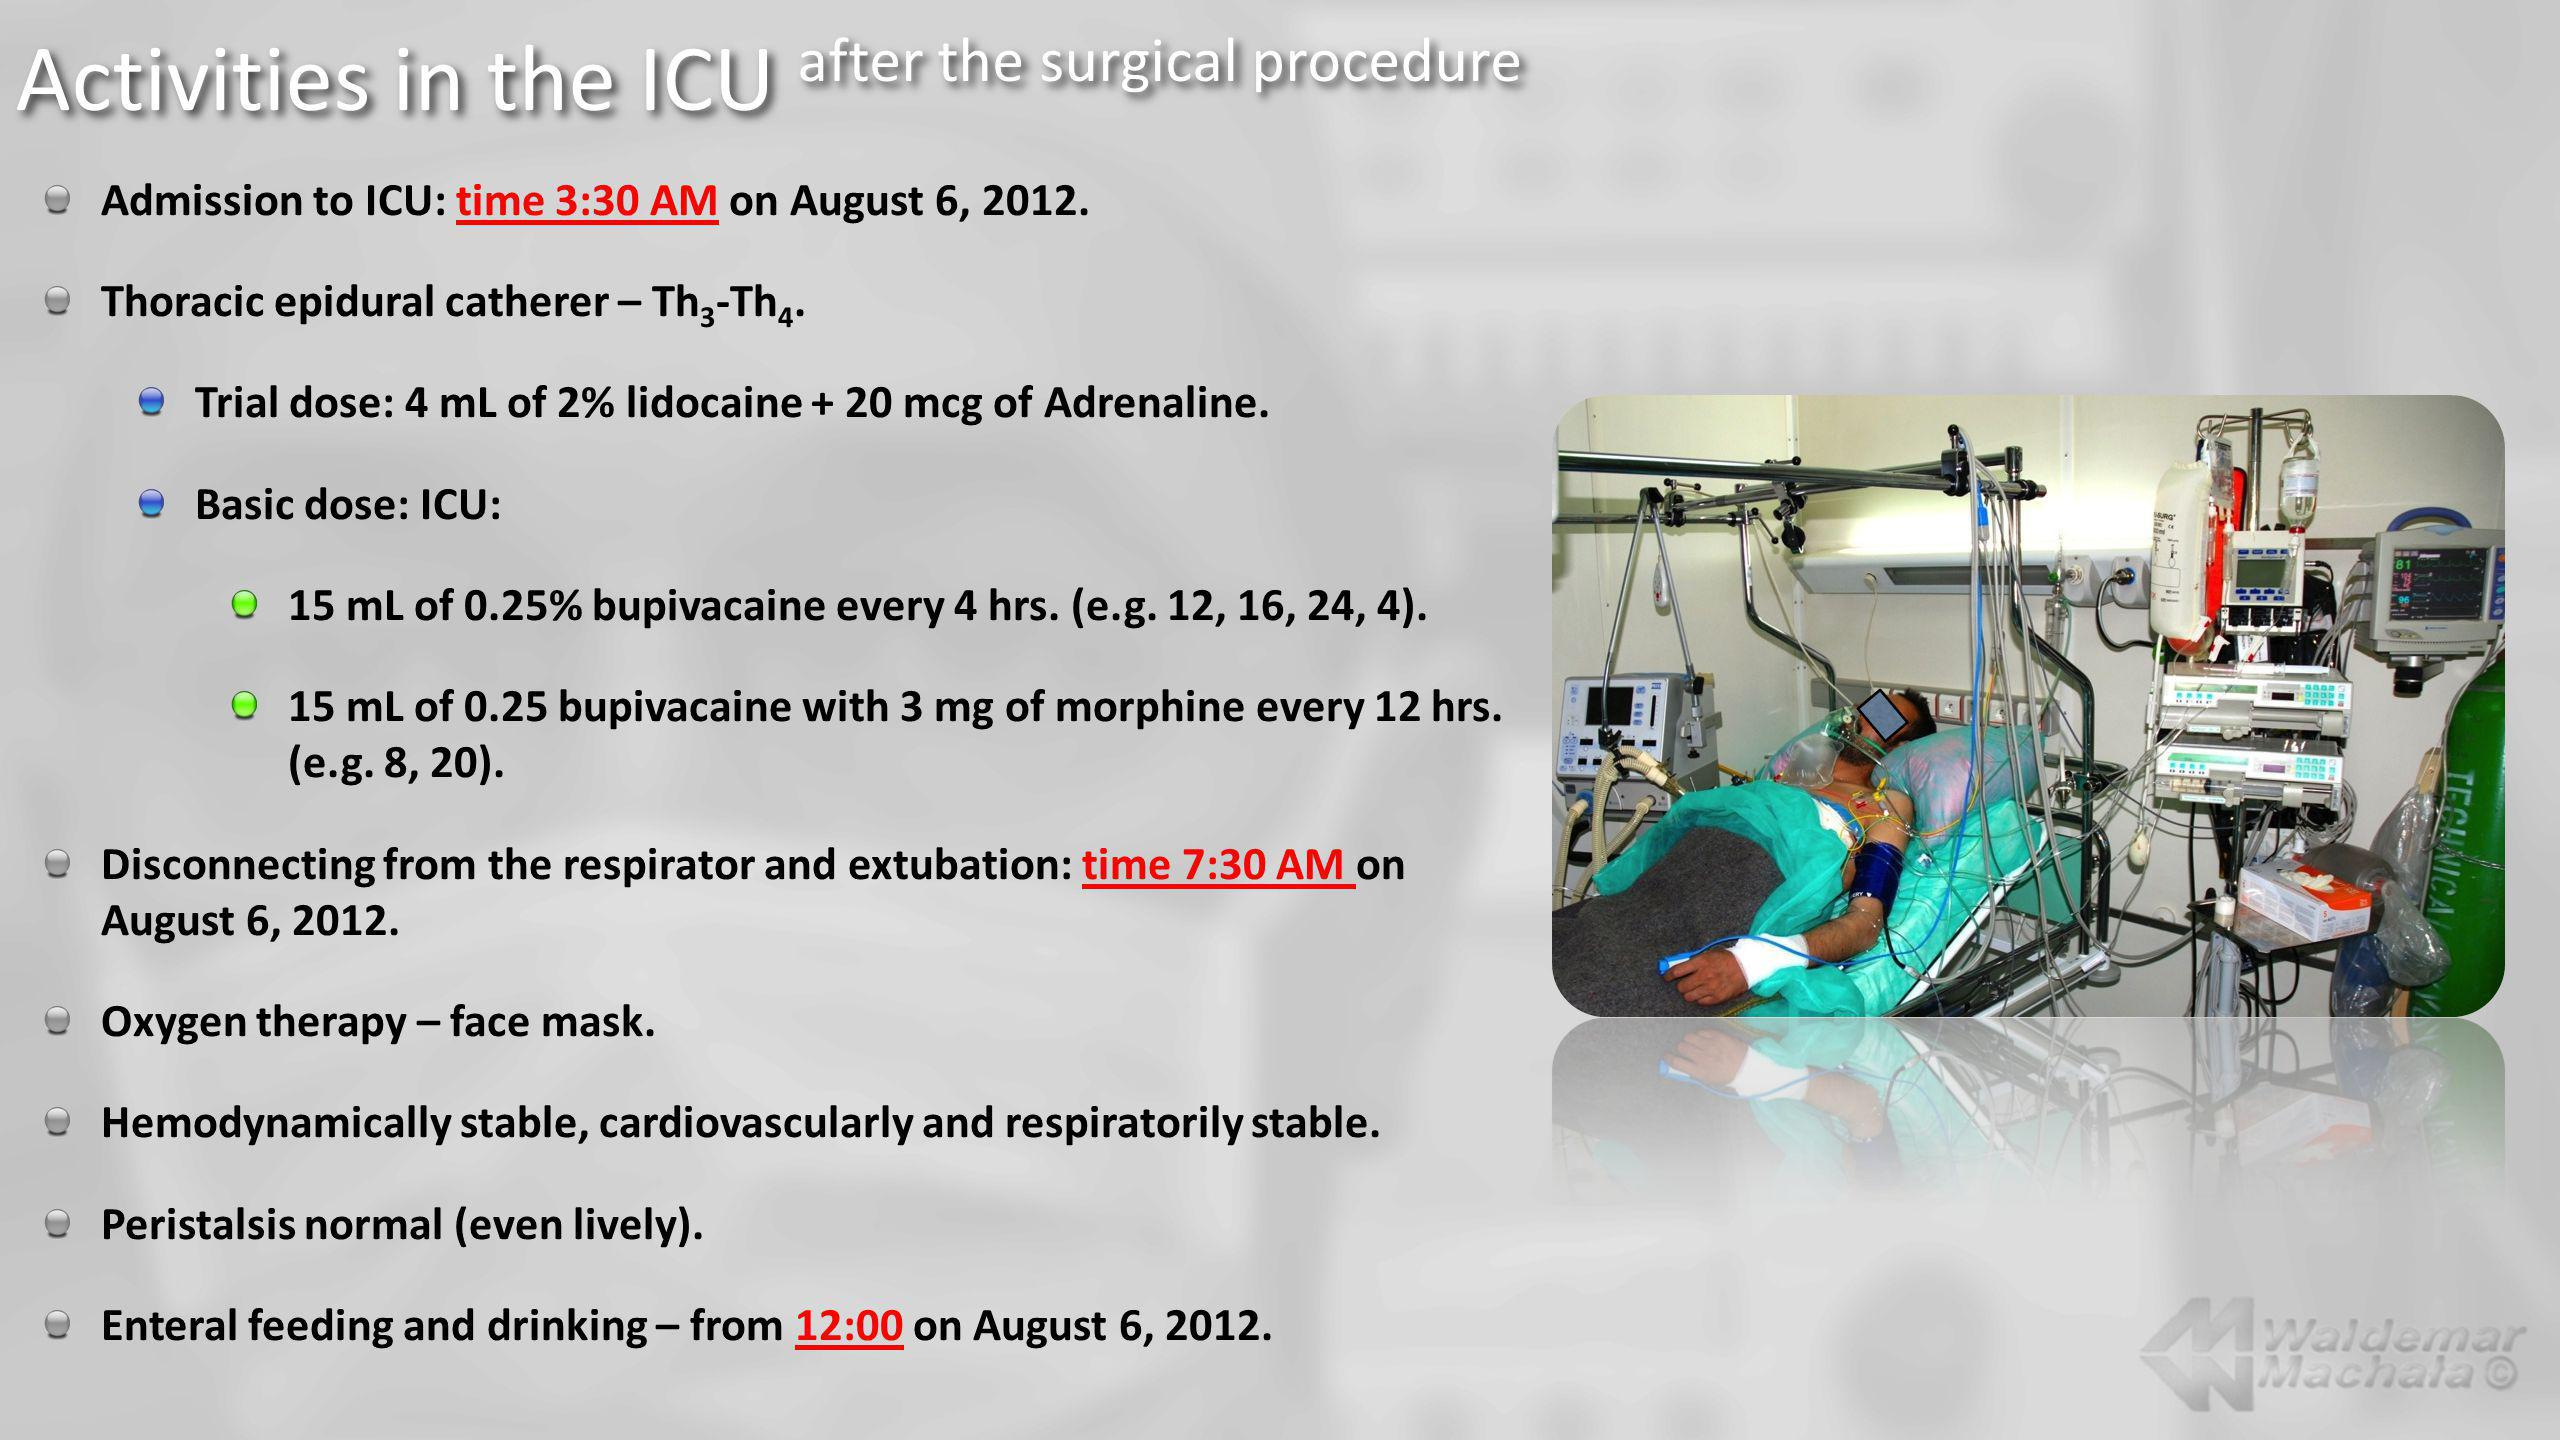 Activities in the ICU after the surgical procedure